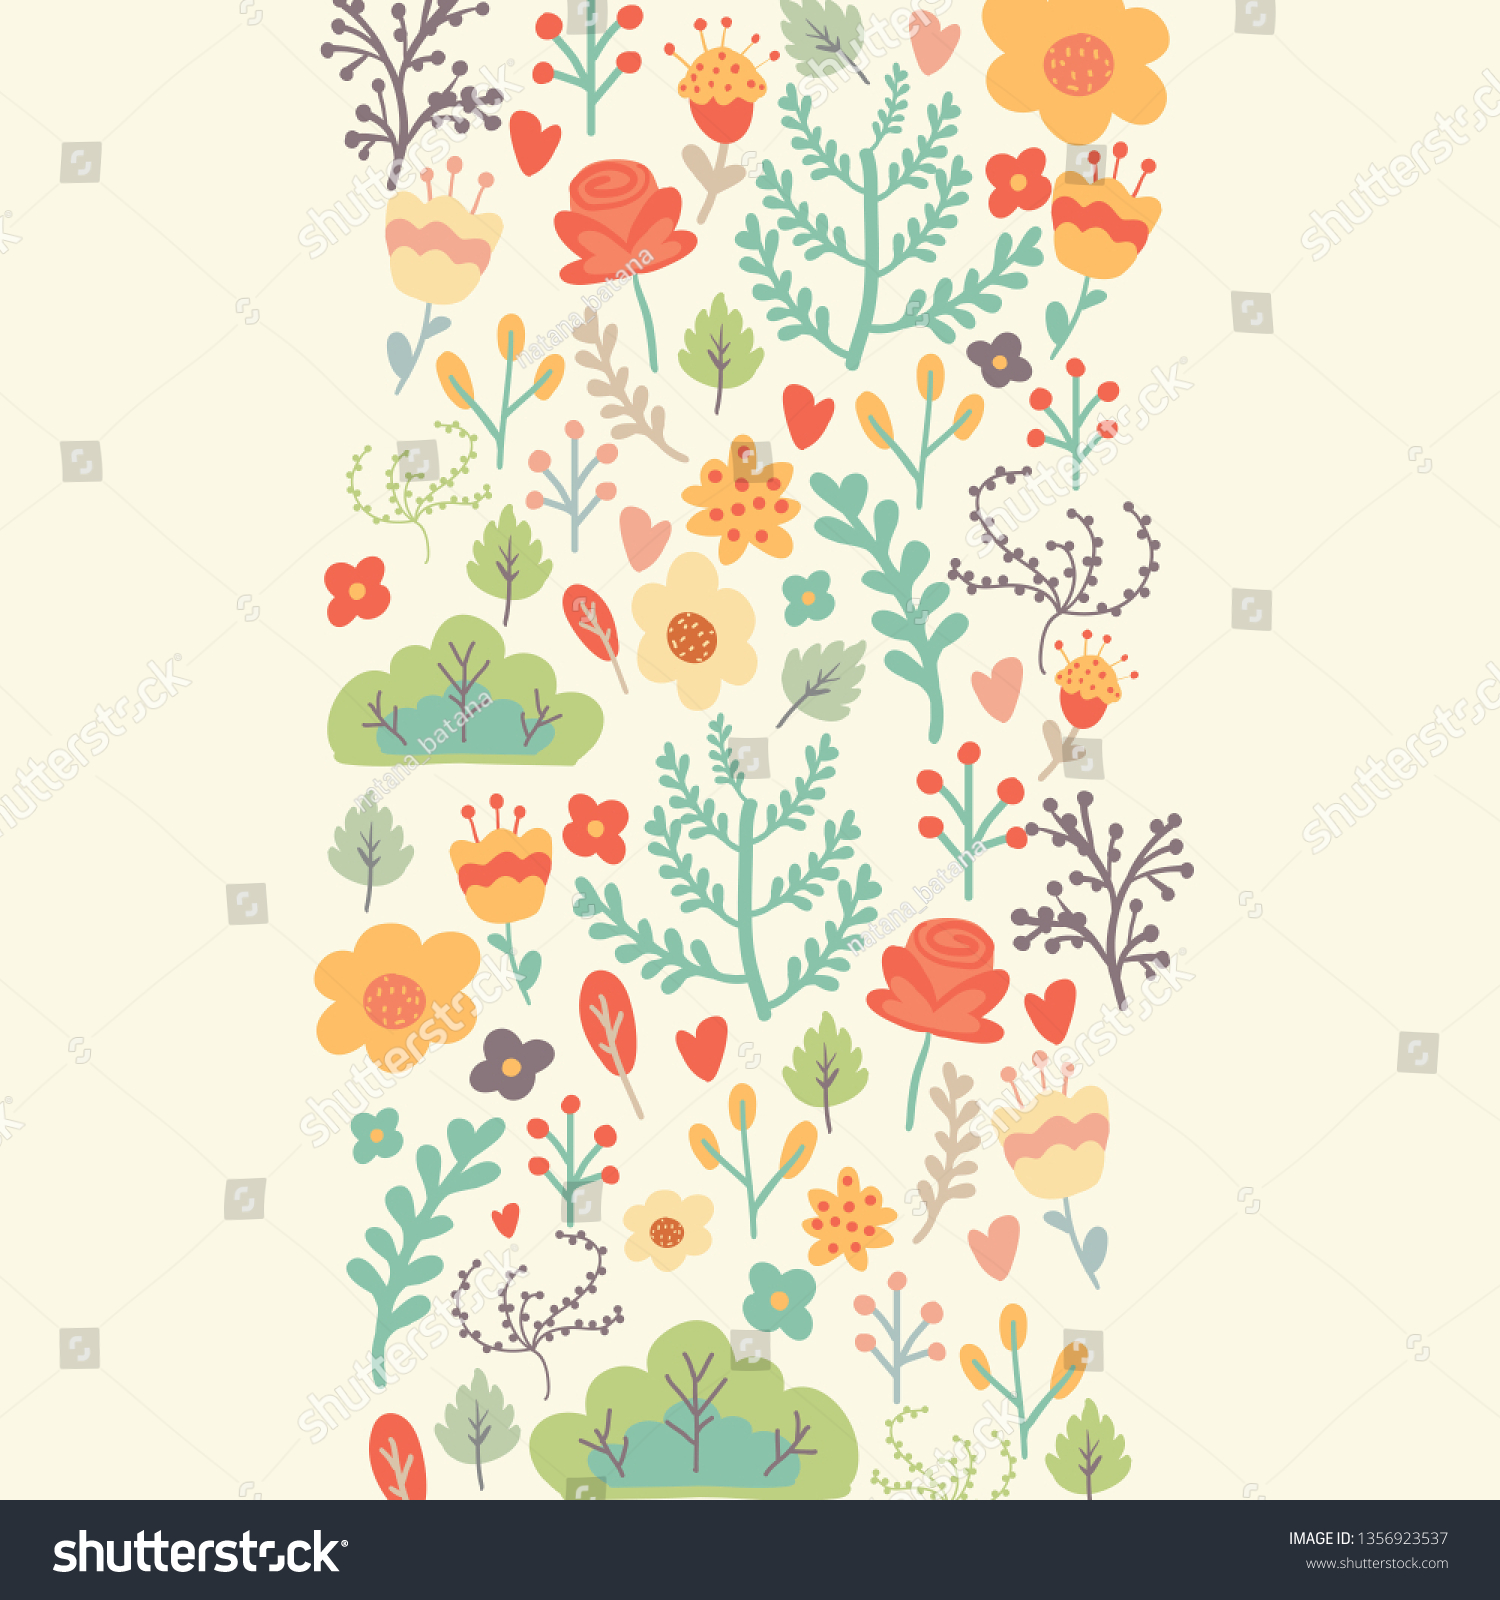 Templates Abstract Grunge Floral Background With Spring Flowers